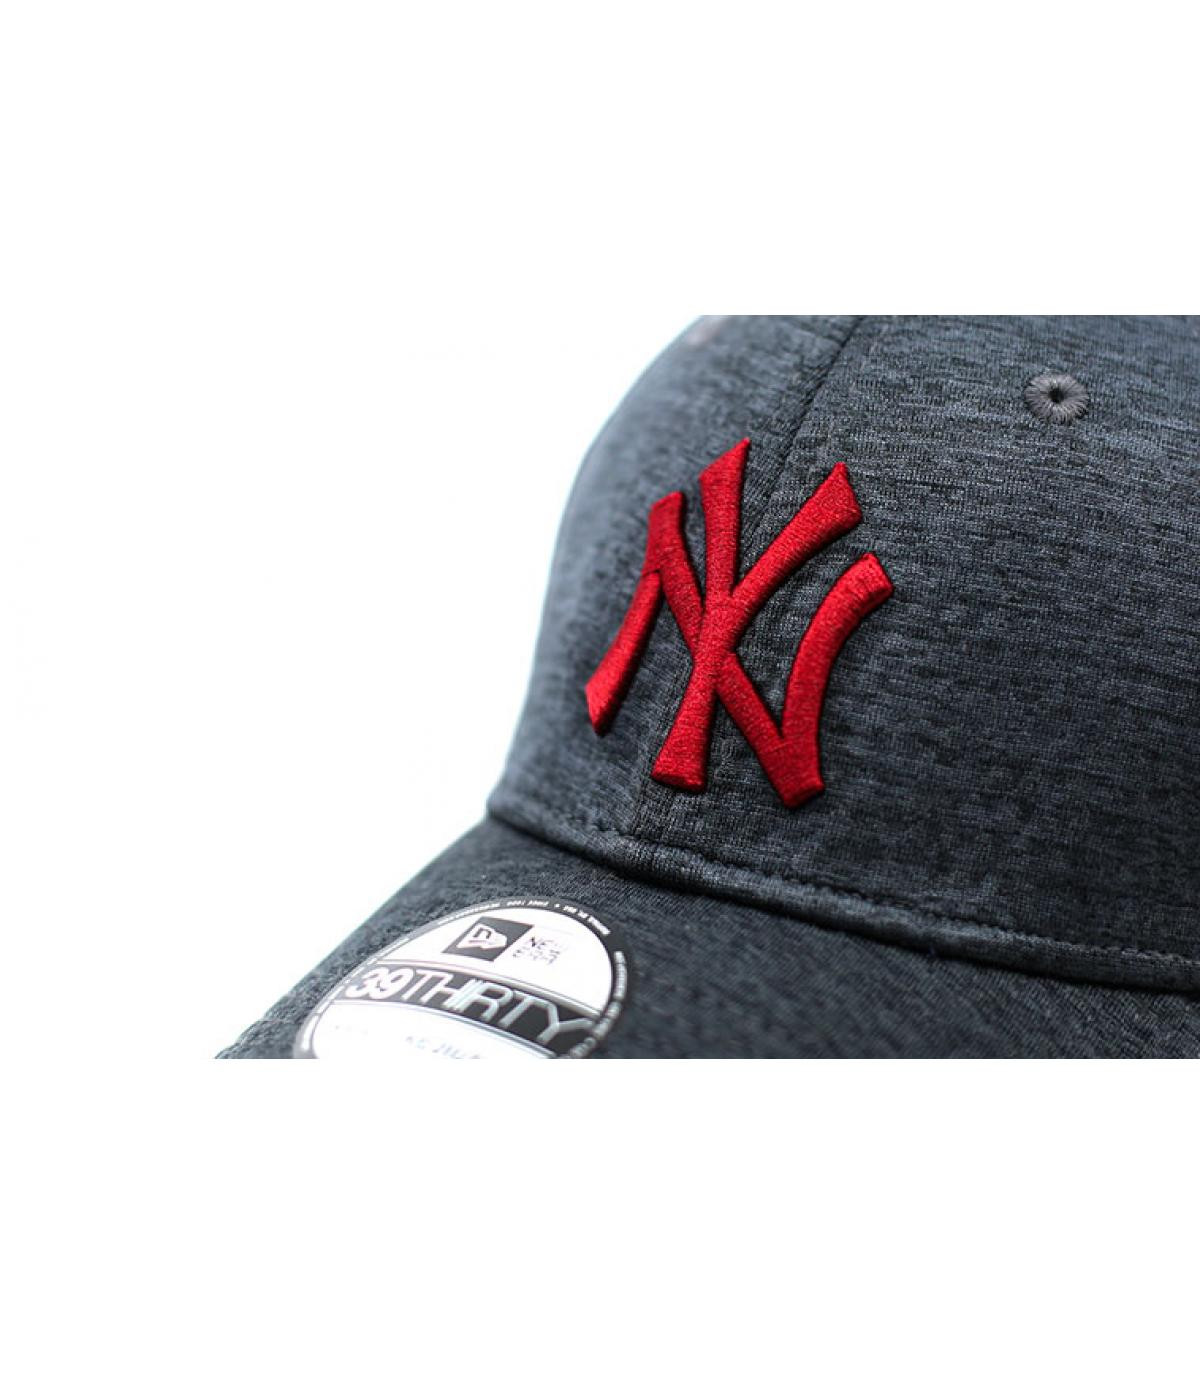 Détails Casquette NY Dryswitch Jersey 39Thirty black cardinal - image 3